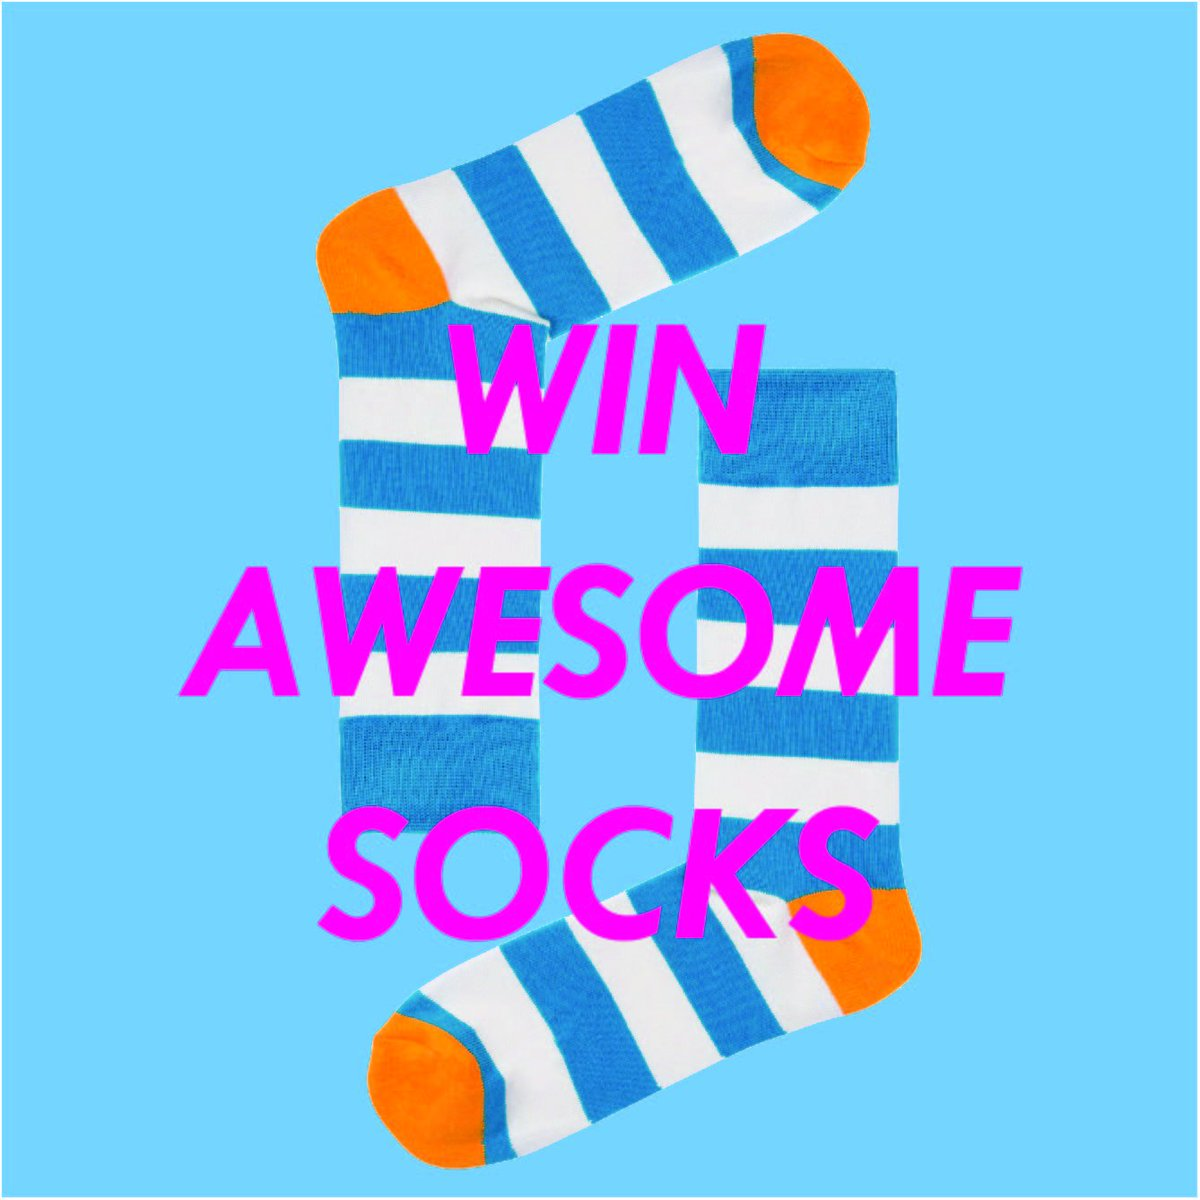 Best foot forward WIN SOCKS every week! #win  http:// bit.ly/2emmF76  &nbsp;   #giftideas #sockgame #SockStyle #free #style RT &amp; Follow <br>http://pic.twitter.com/sGMZHA8iZY